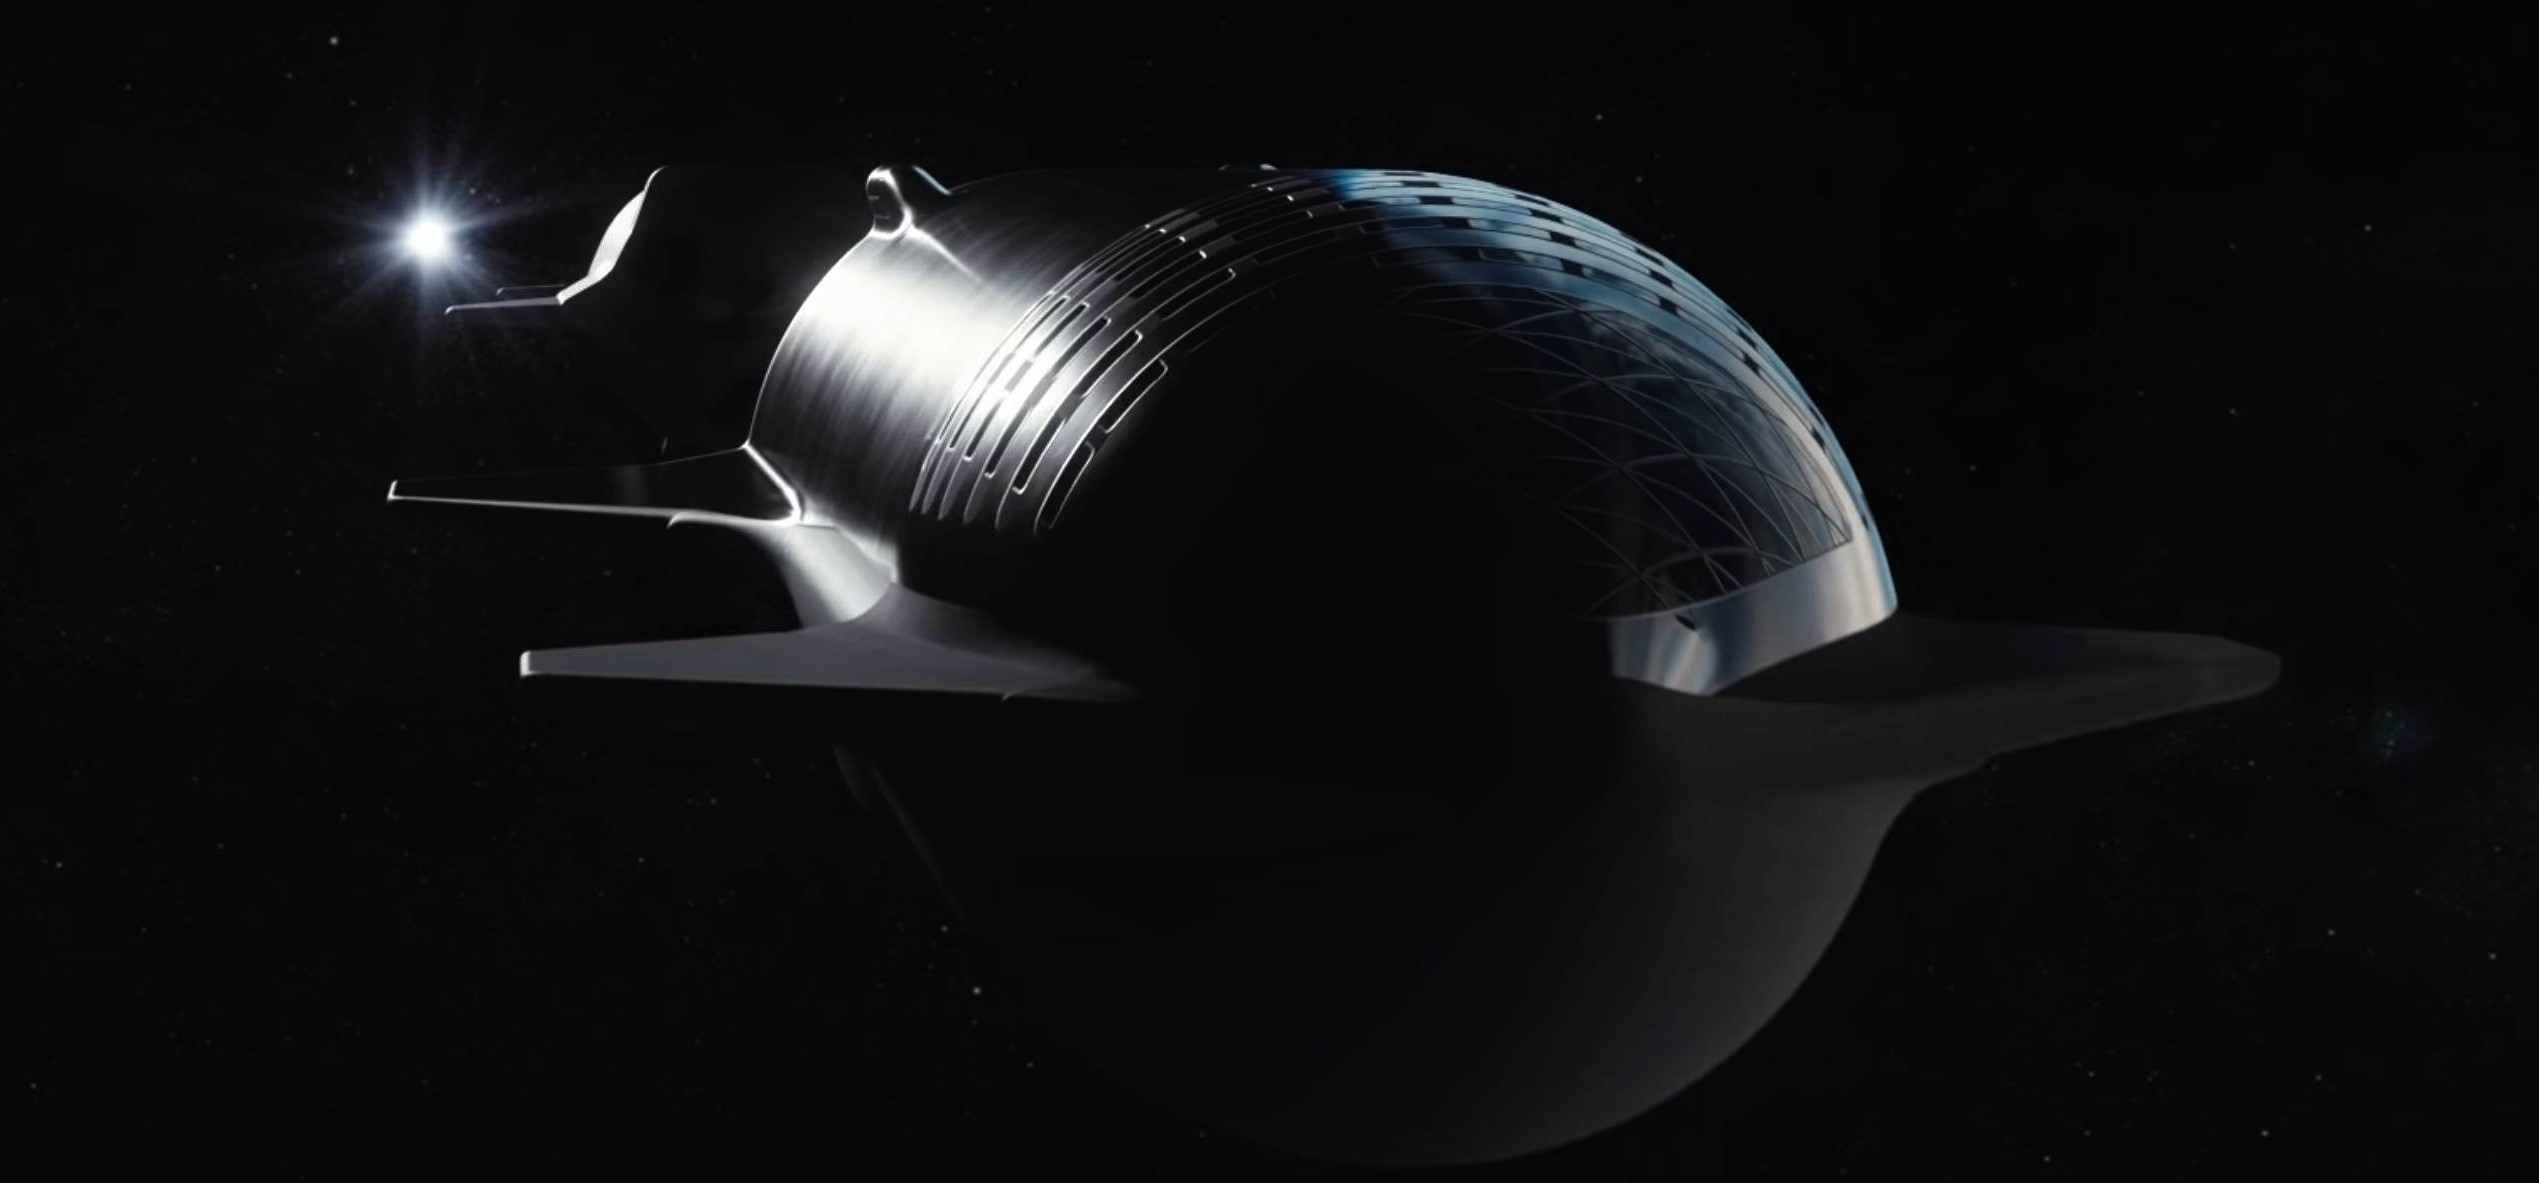 Starship Super Heavy 2019 (SpaceX) refueling 3 crop